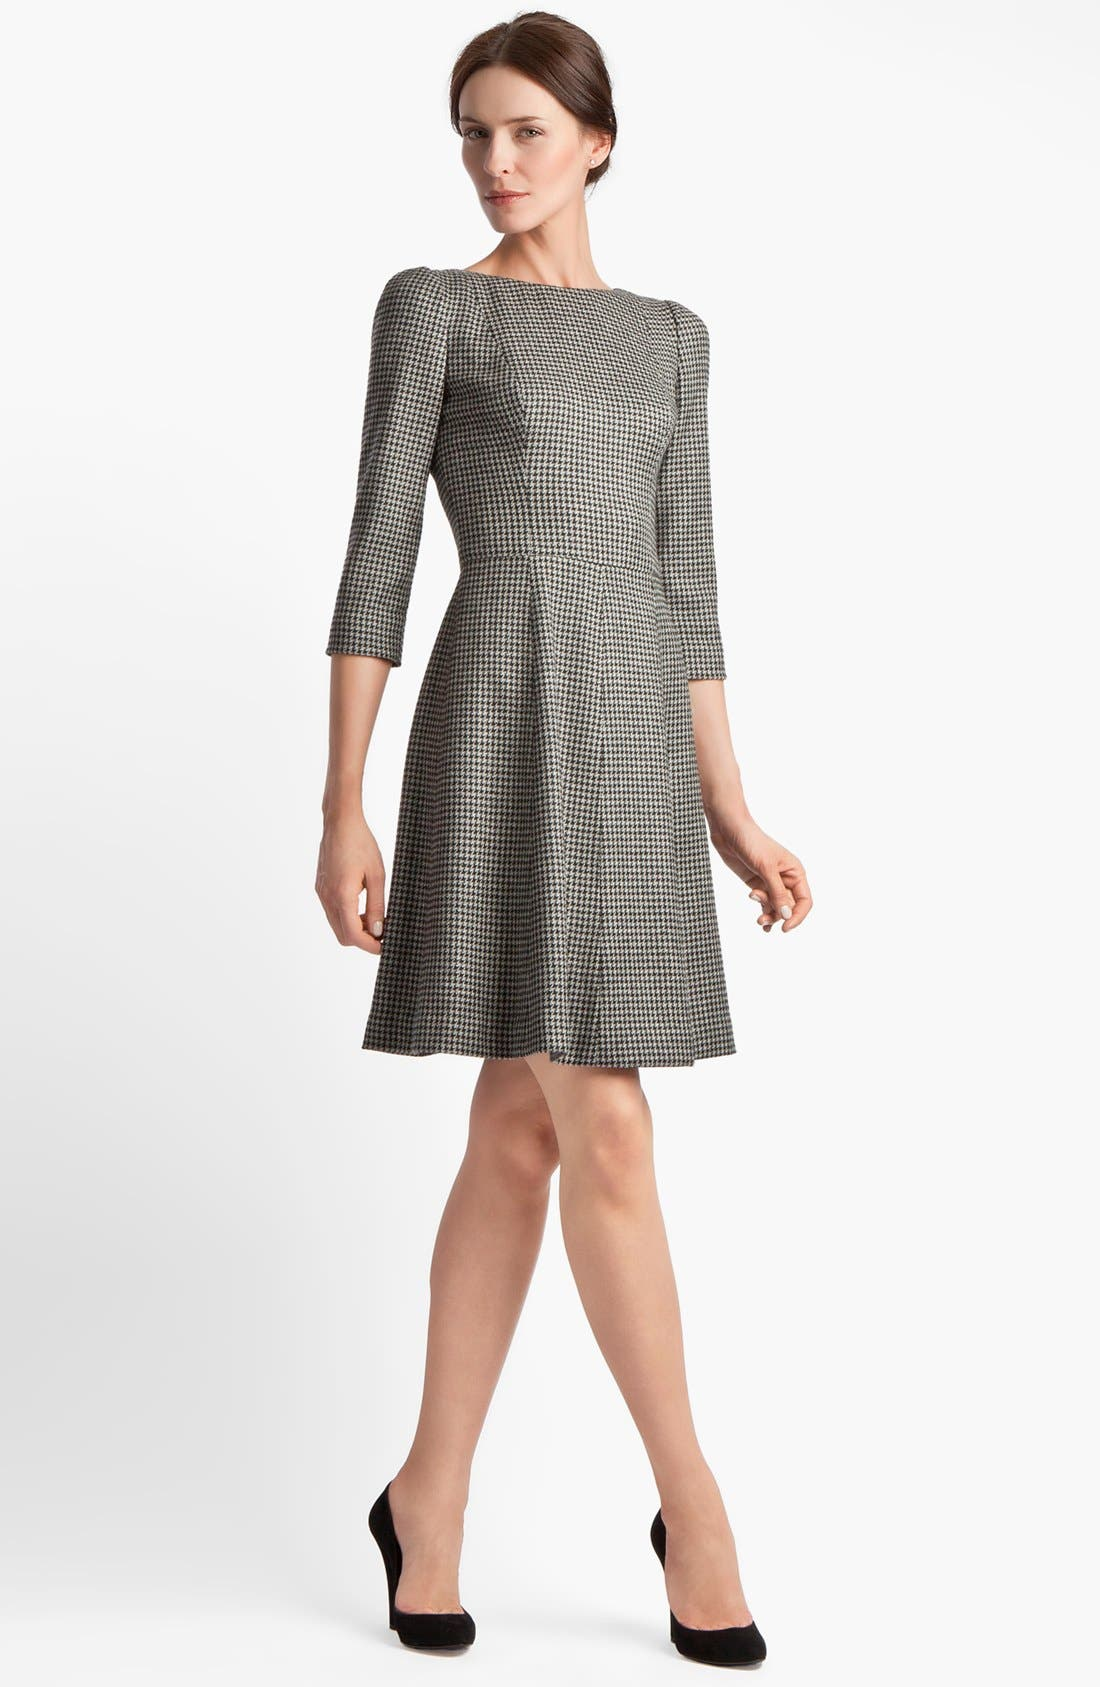 Alternate Image 1 Selected - Dolce&Gabbana Stretch Houndstooth Dress